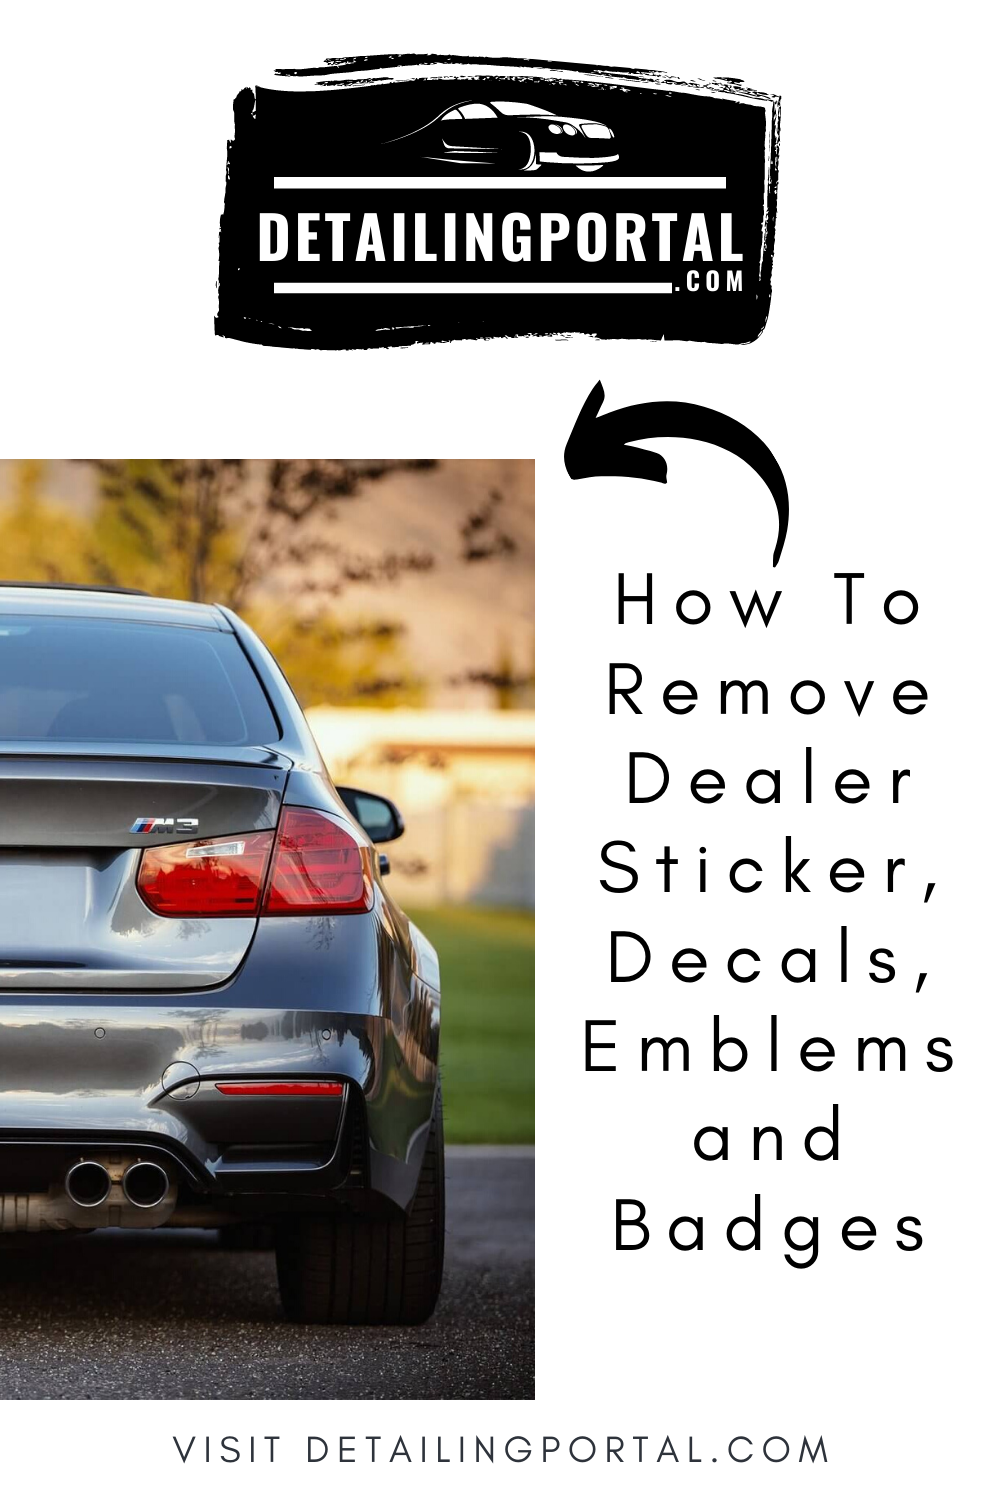 How To Remove Dealer Sticker Decals Emblems And Badges Buying Your First Car Emblems How To Remove